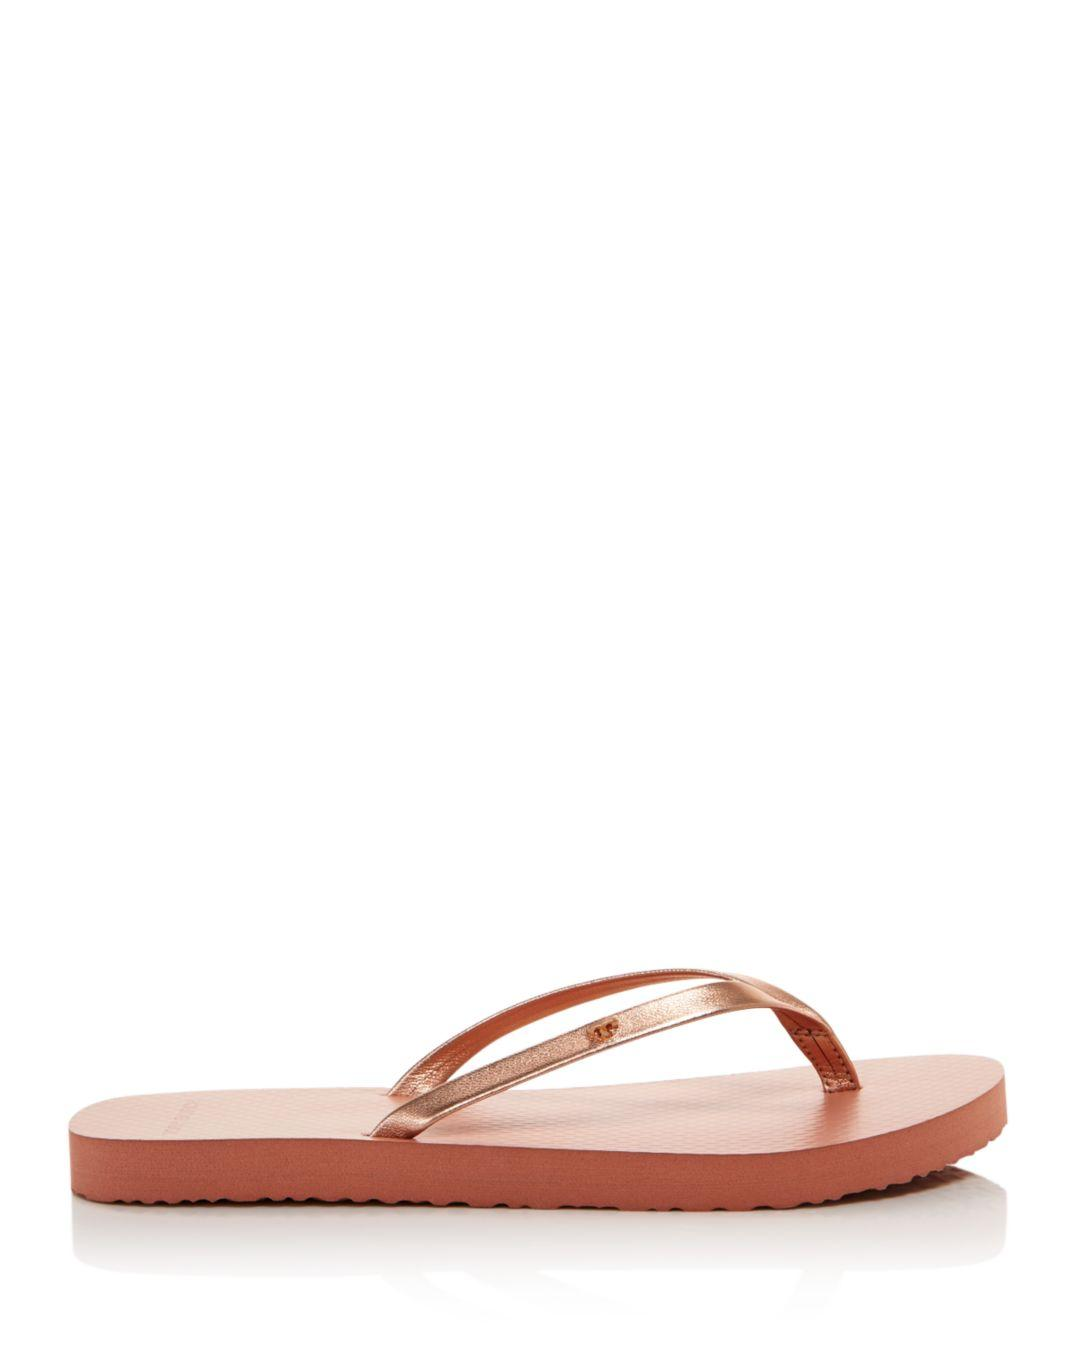 ea12d56ae49 Lyst - Tory Burch Women s Metallic Leather Thong Sandals in Metallic